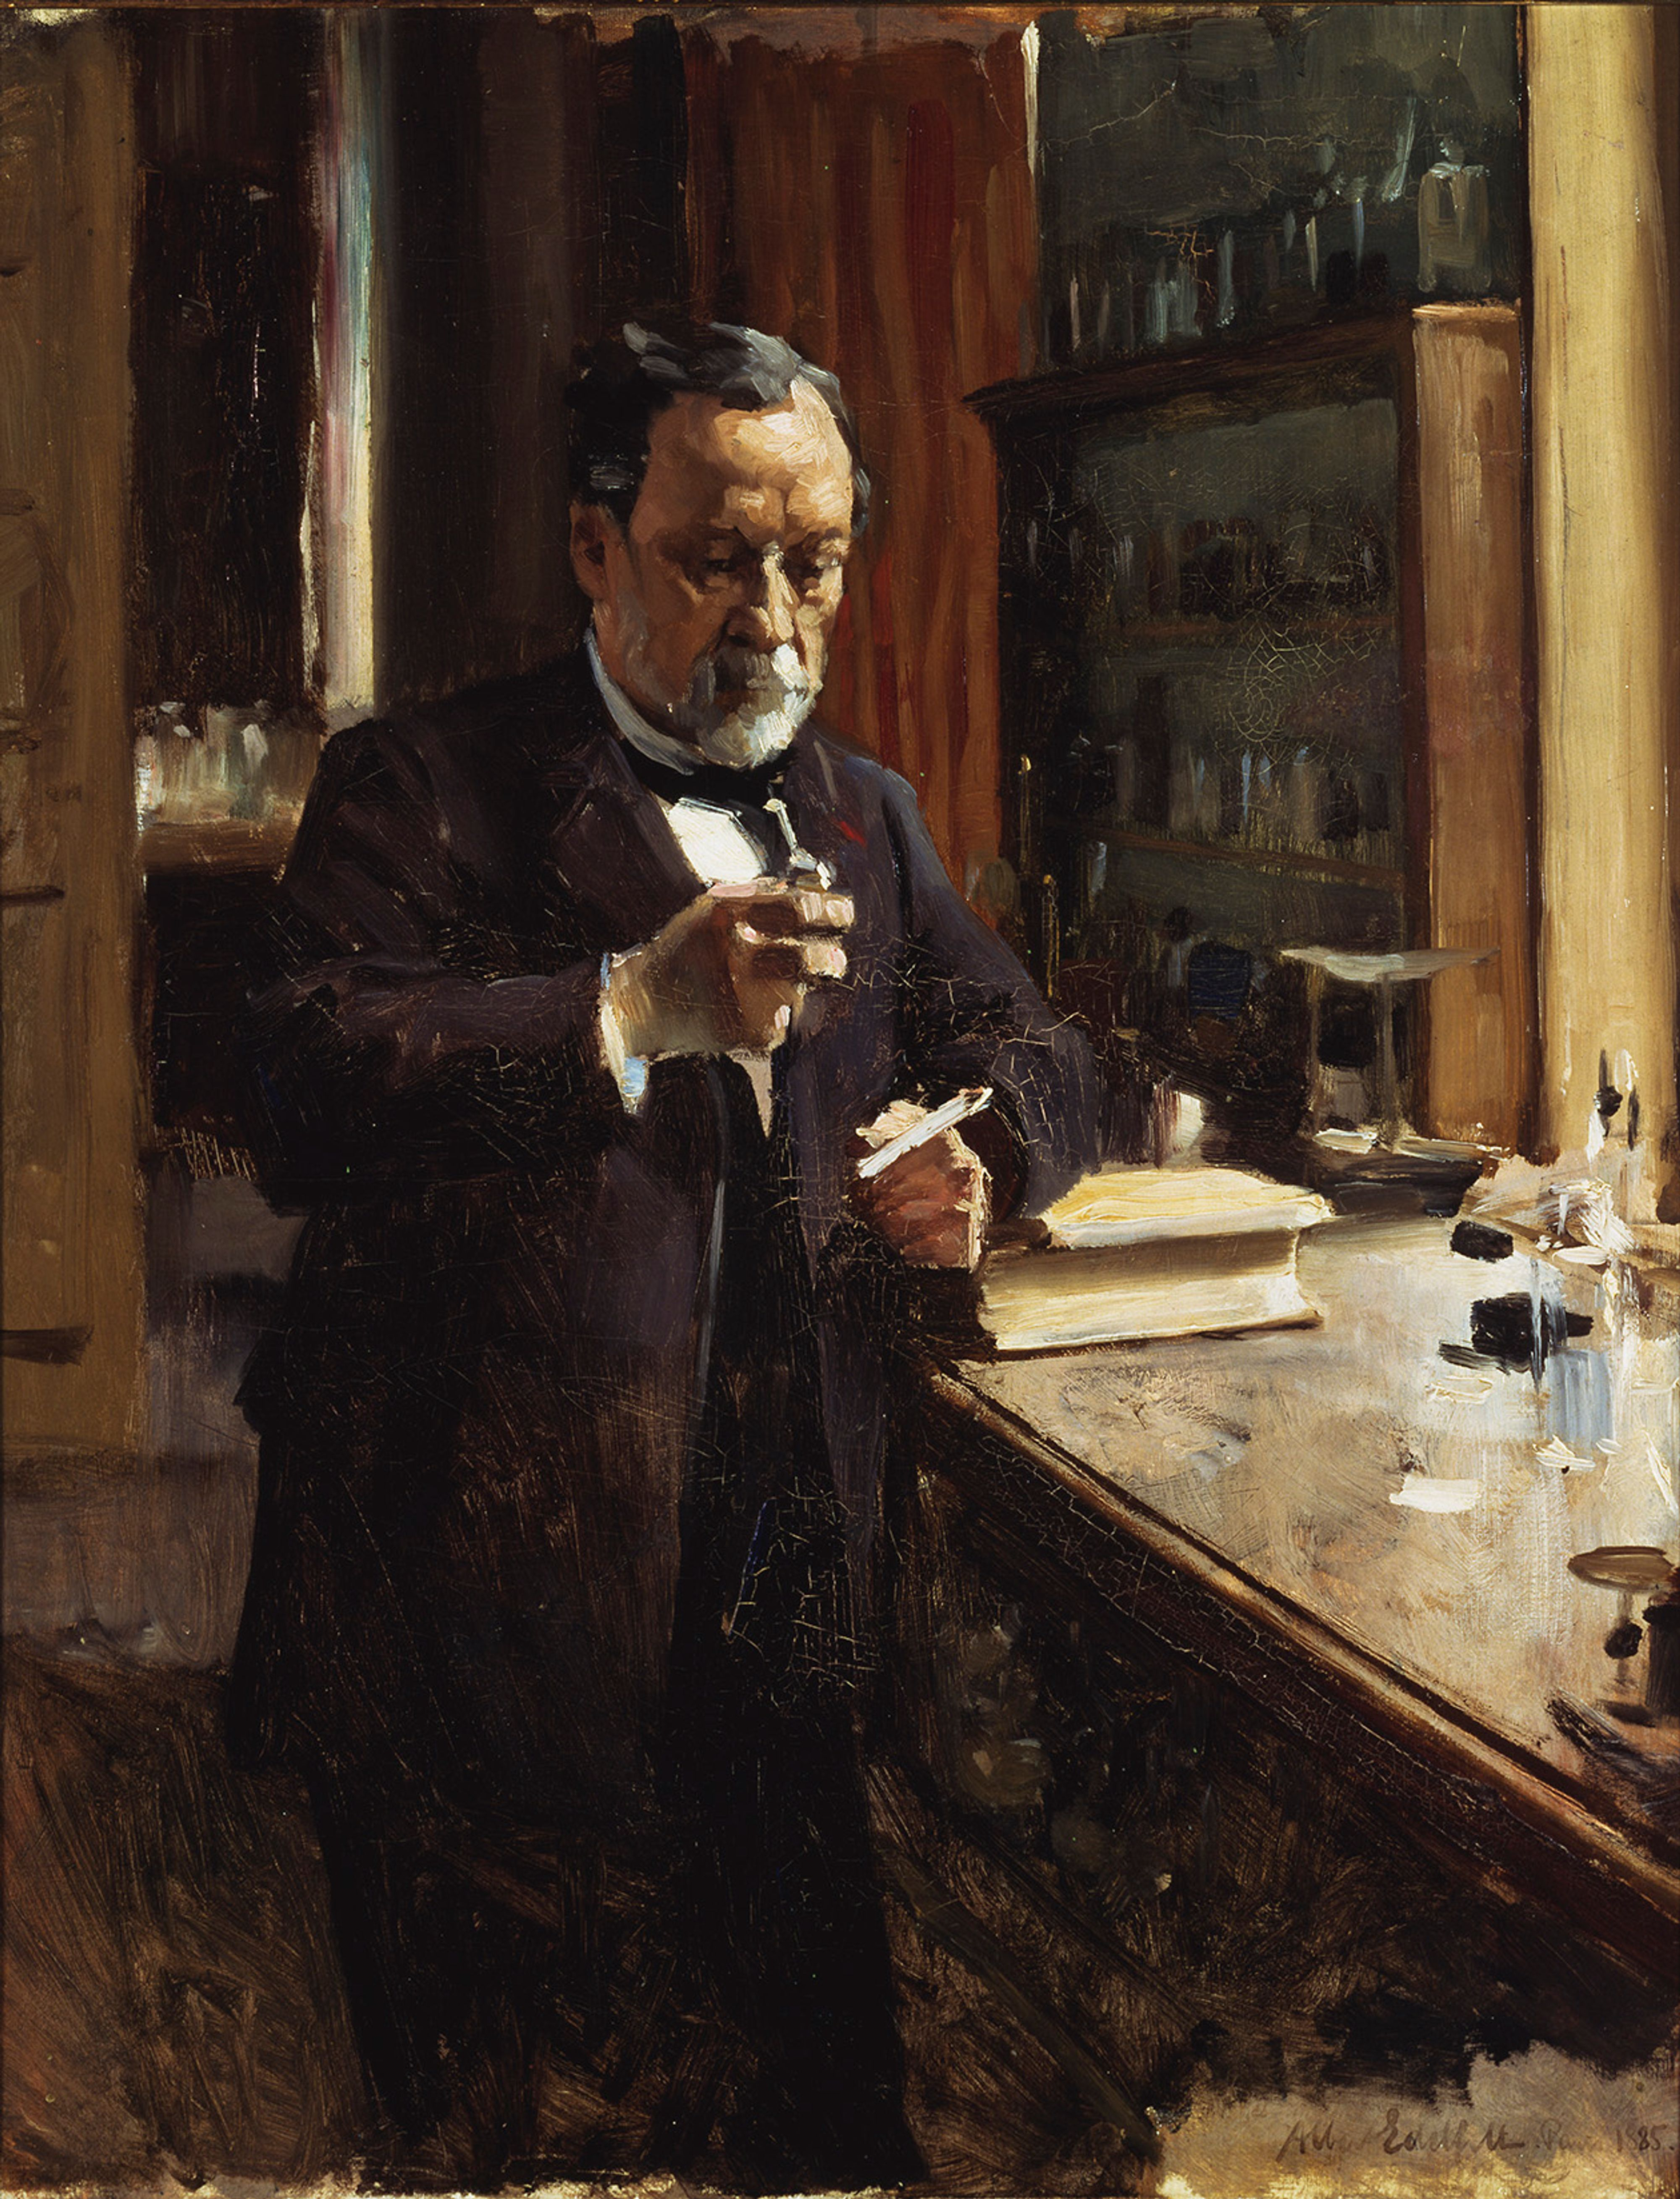 the works of louis pasteur In this spirit of giving thanks this holiday season, we will explore the history of  vaccines and the work of the 19th century pioneer louis pasteur,.